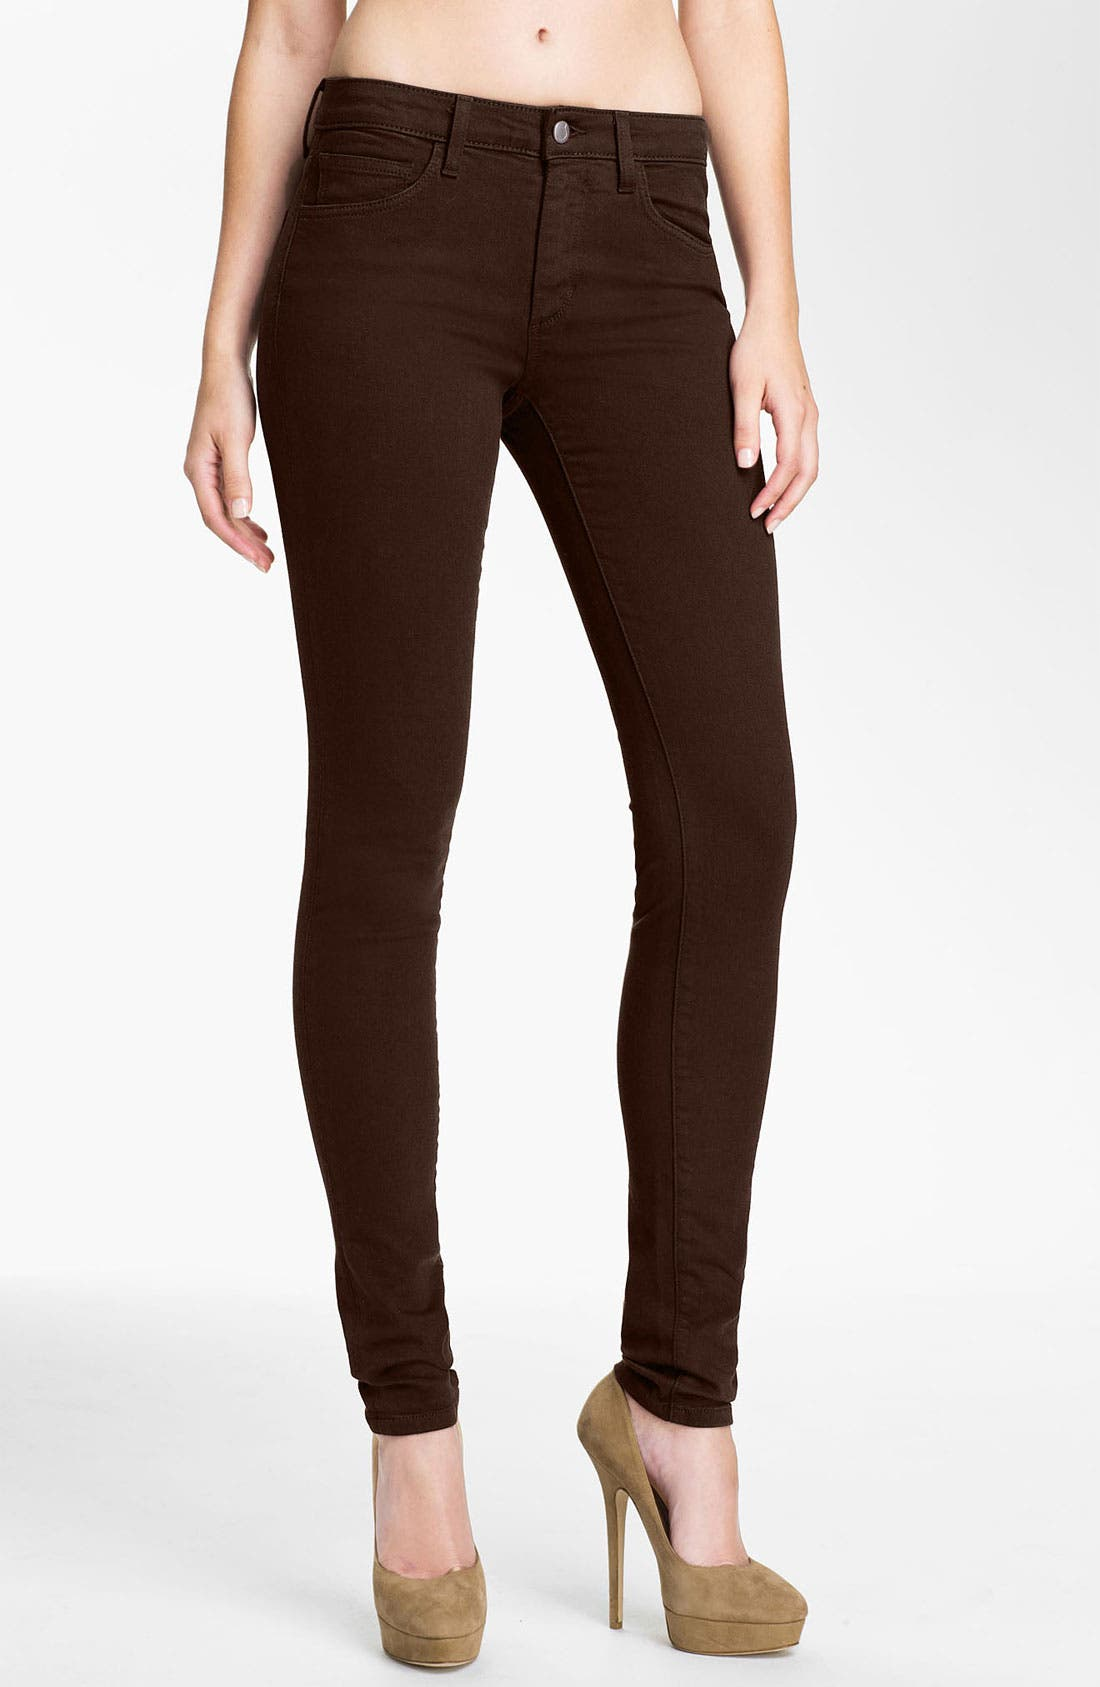 Alternate Image 1 Selected - Joe's Skinny Stretch Jeans (Fudge)